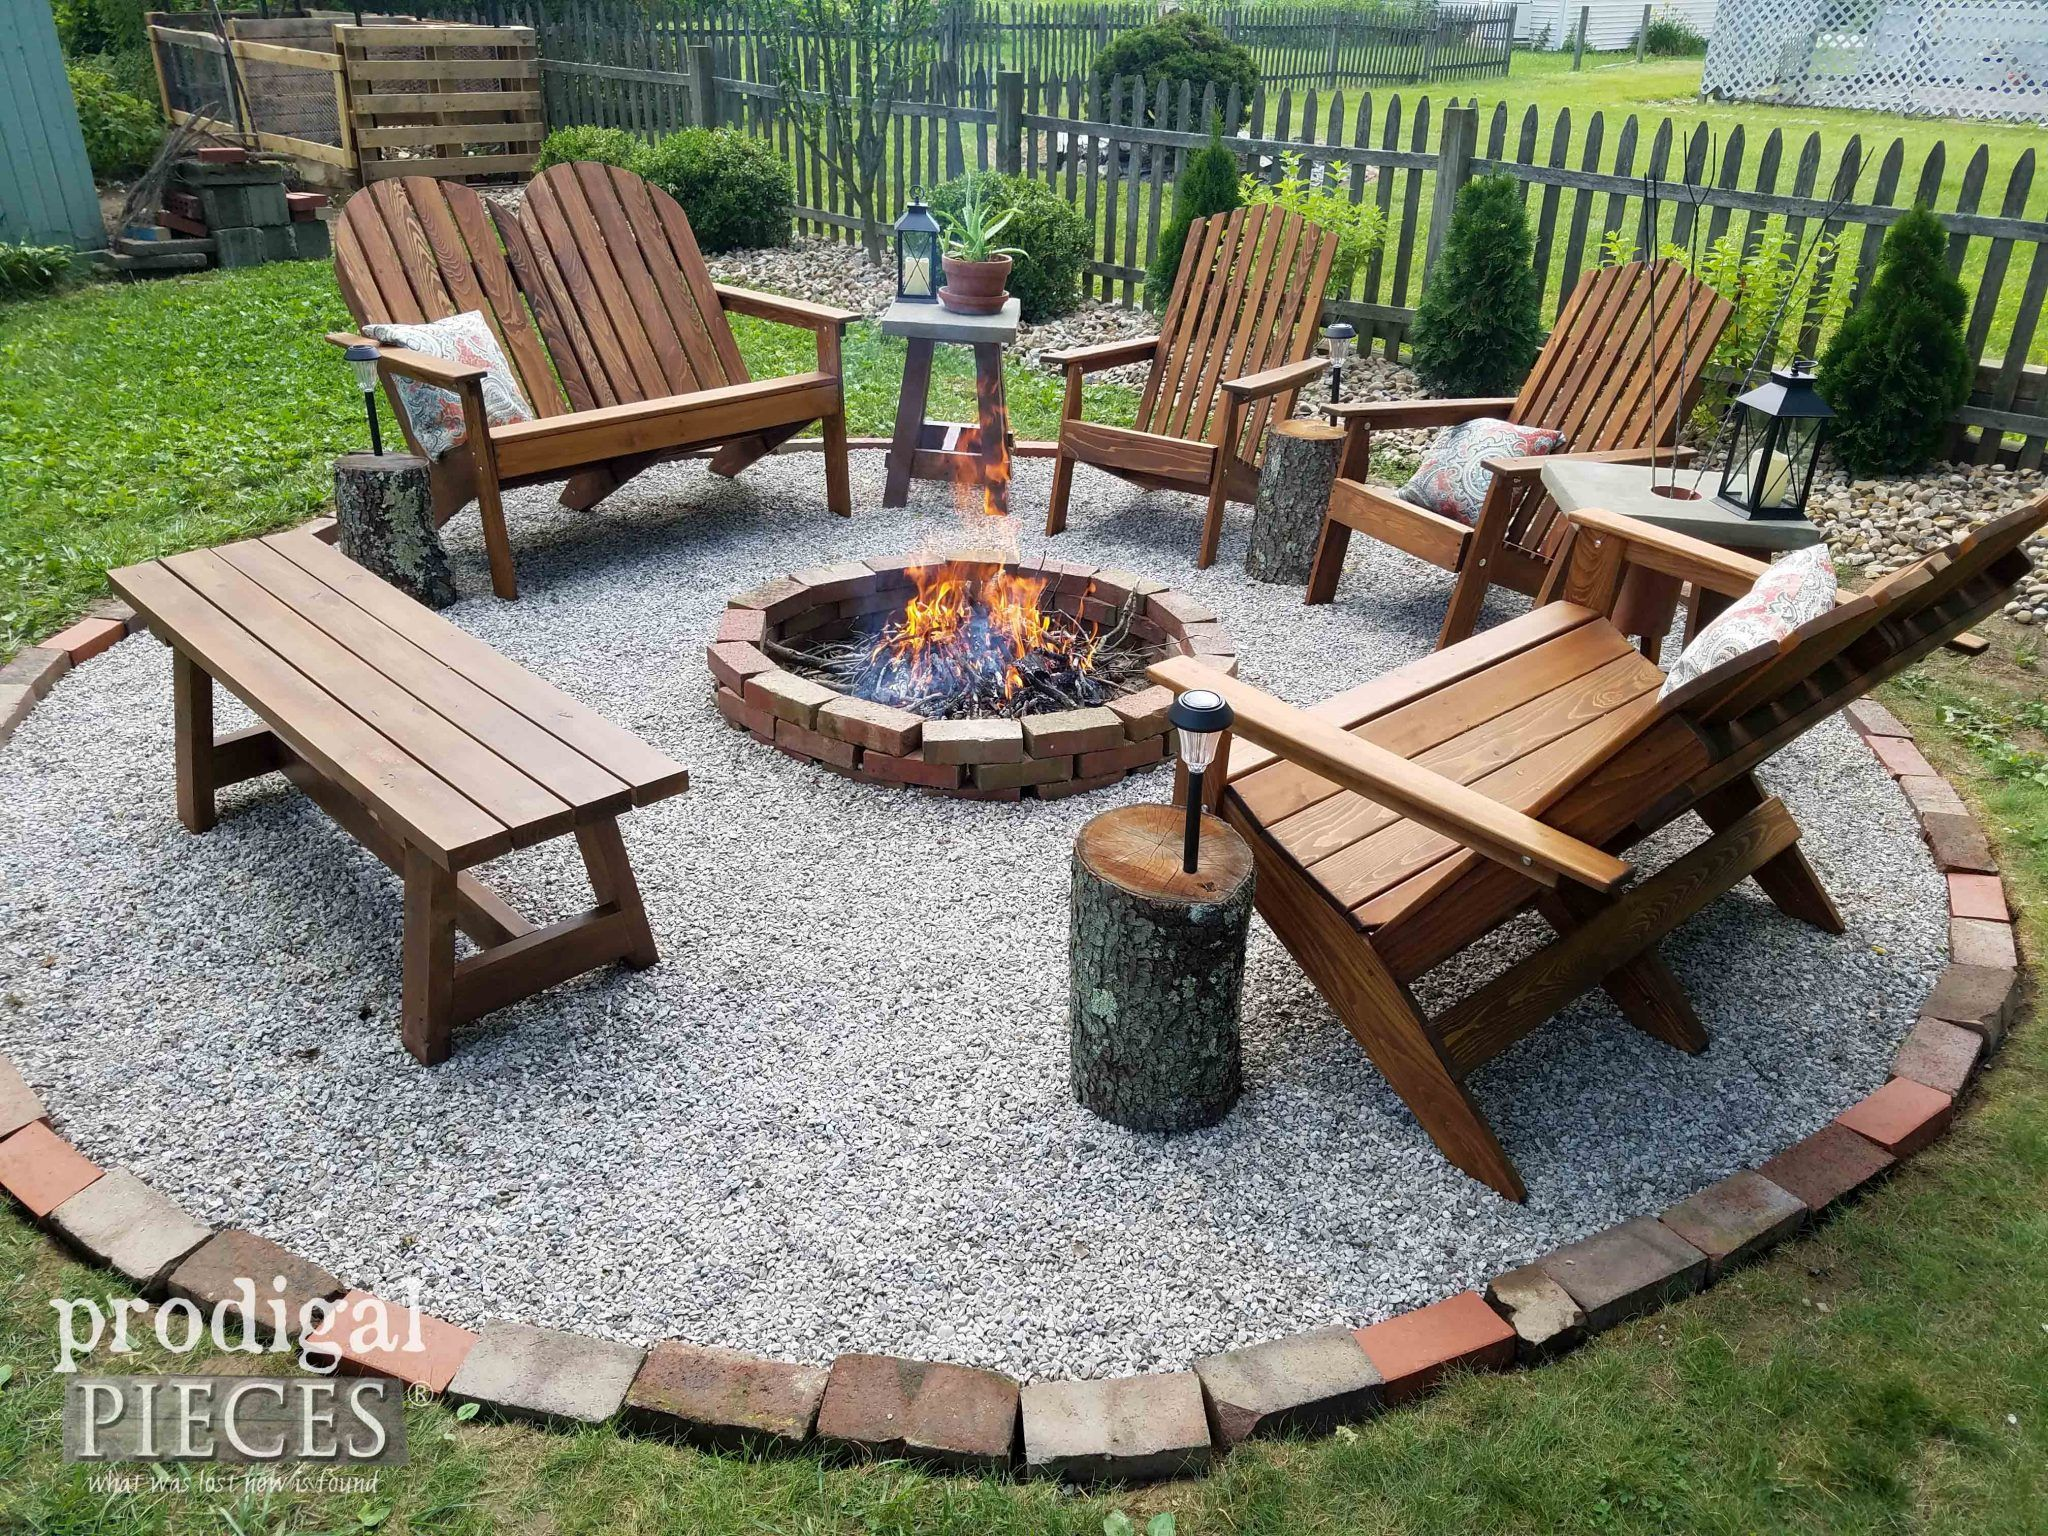 Diy Fire Pit Backyard Budget Decor Prodigal Pieces Backyard Patio Designs Budget Backyard Fire Pit Backyard